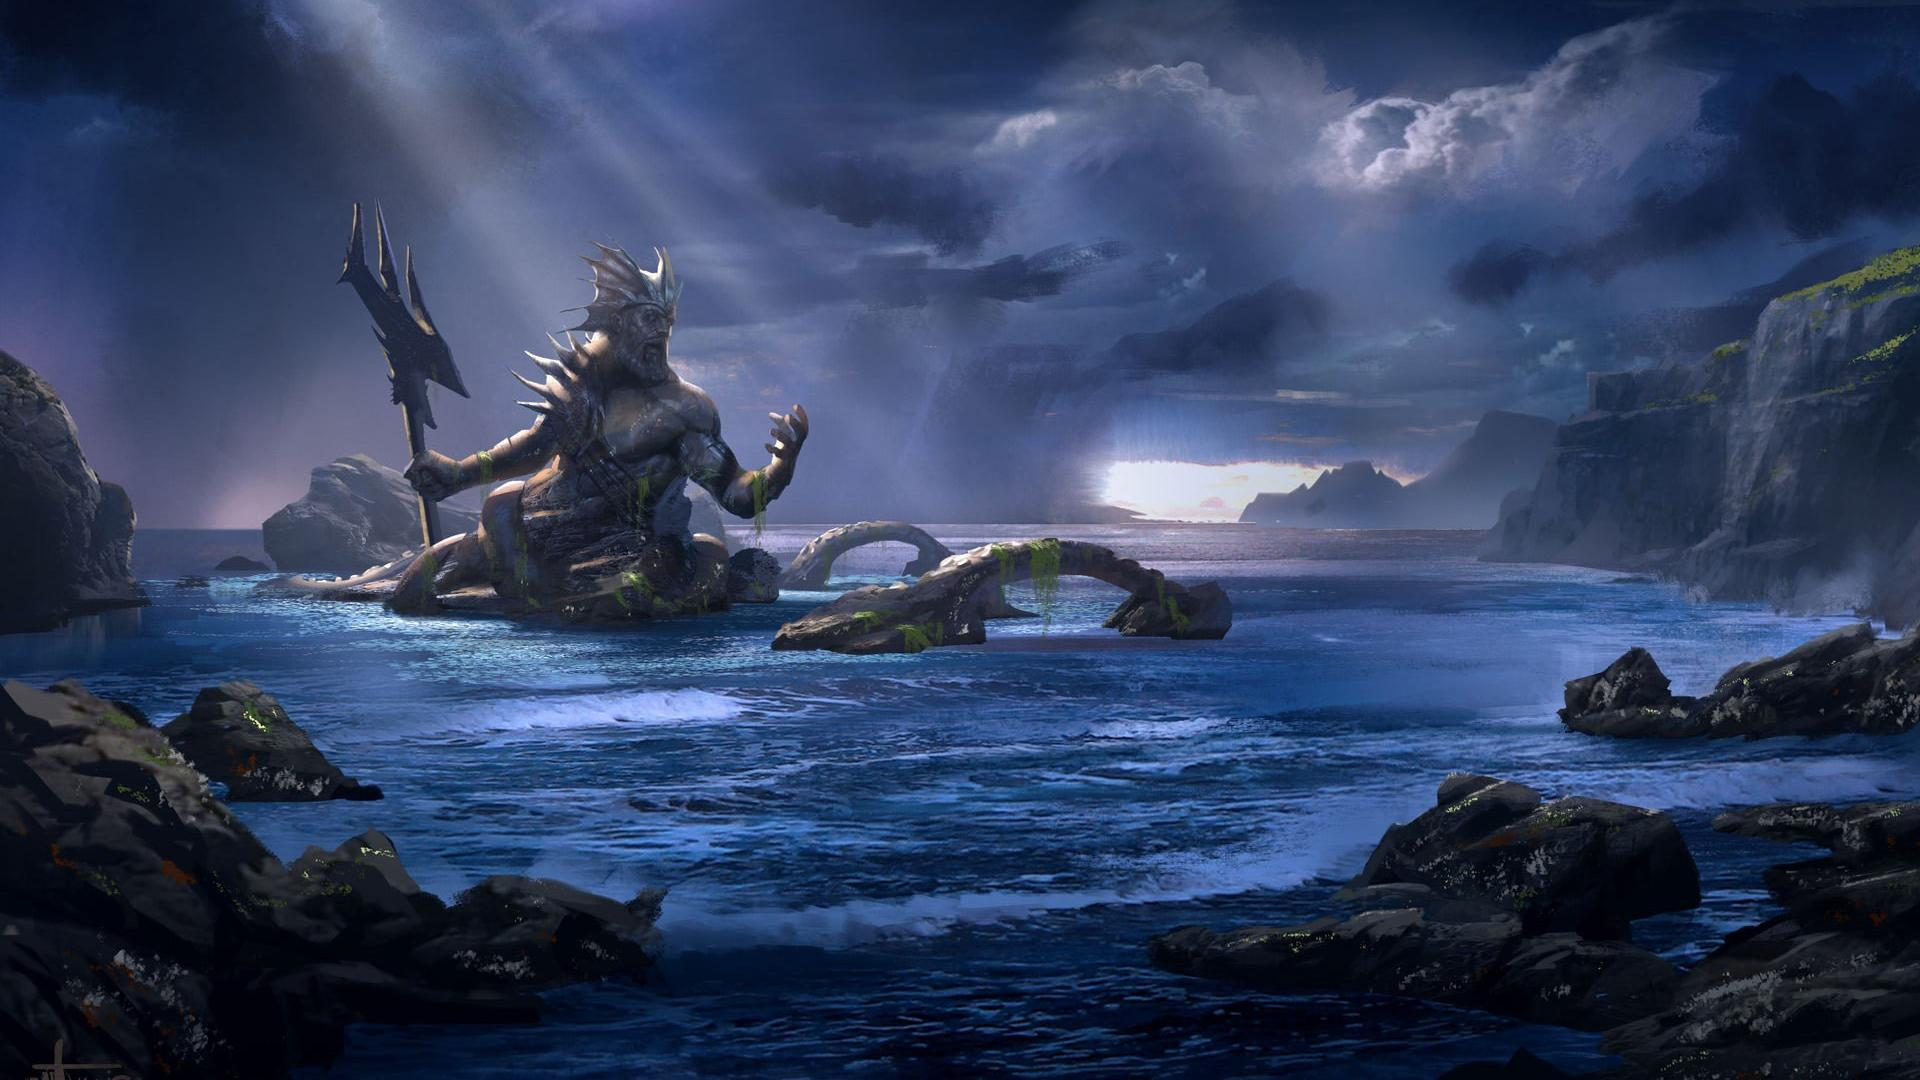 War poseidon mythology trident gods game ascension wallpapers